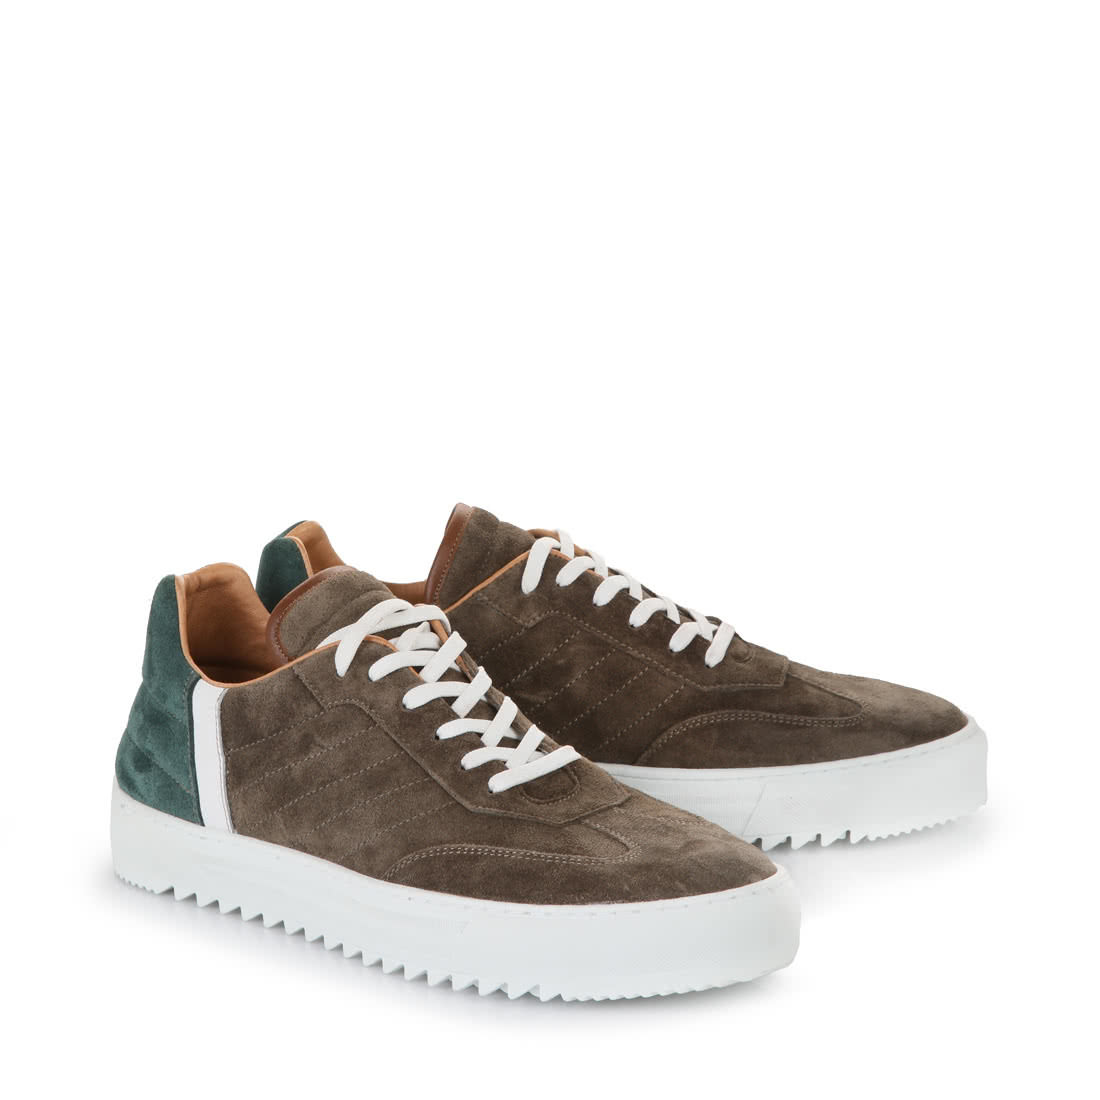 buffalo herren sneaker in taupe online kaufen buffalo. Black Bedroom Furniture Sets. Home Design Ideas